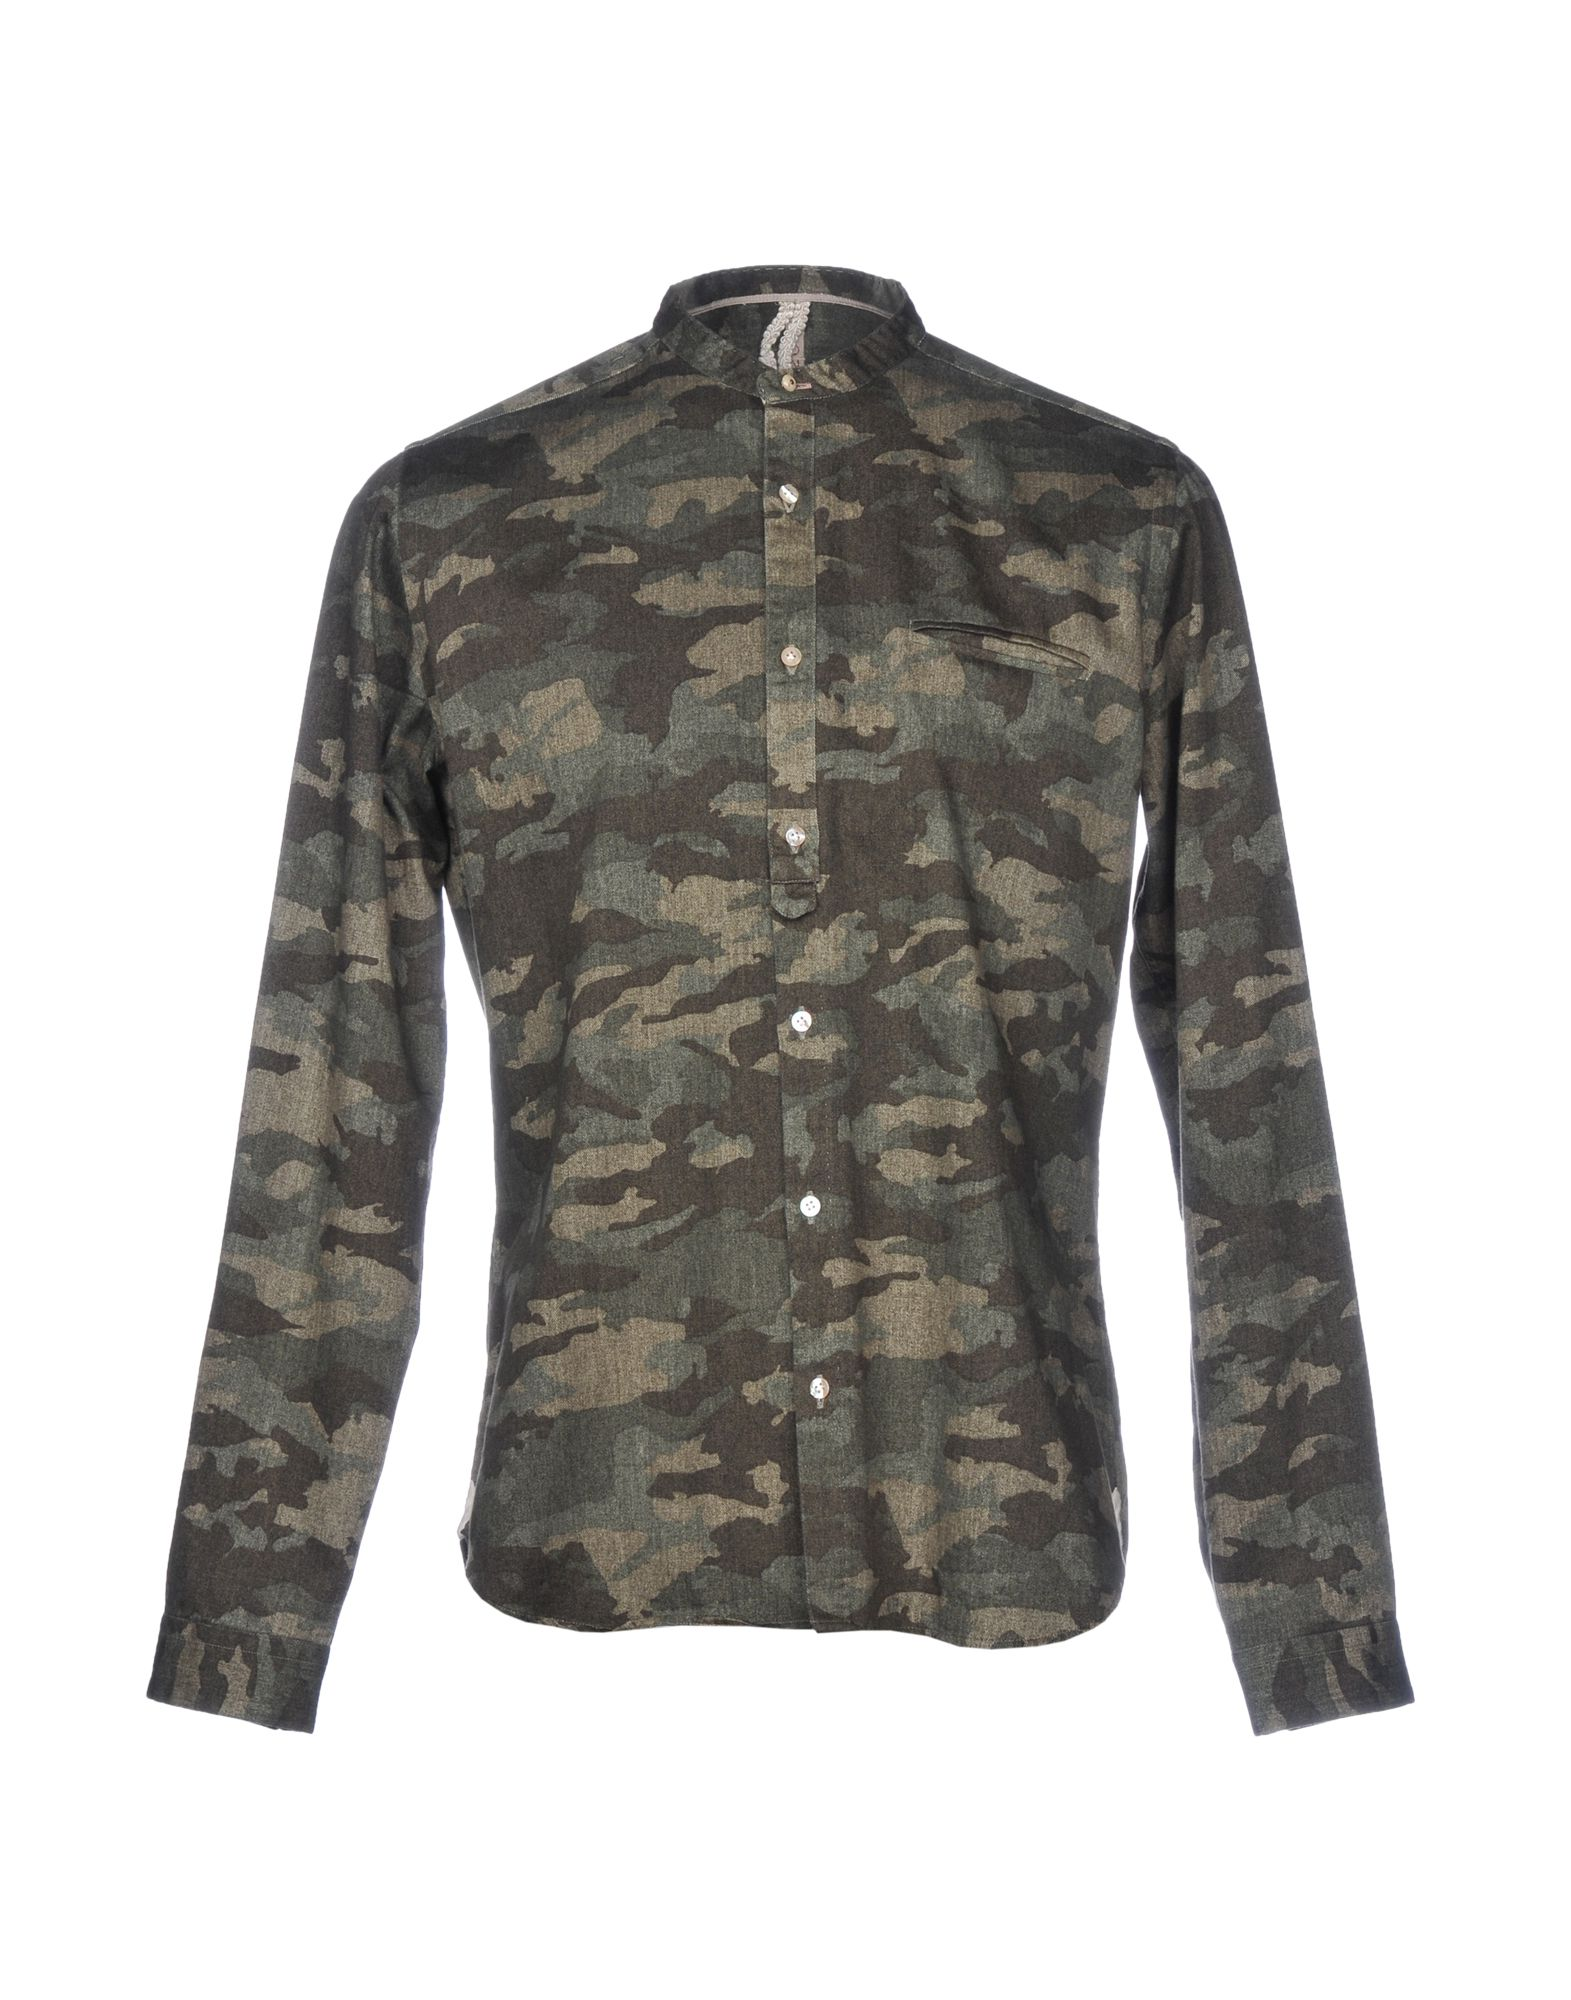 DNL Patterned Shirt in Military Green